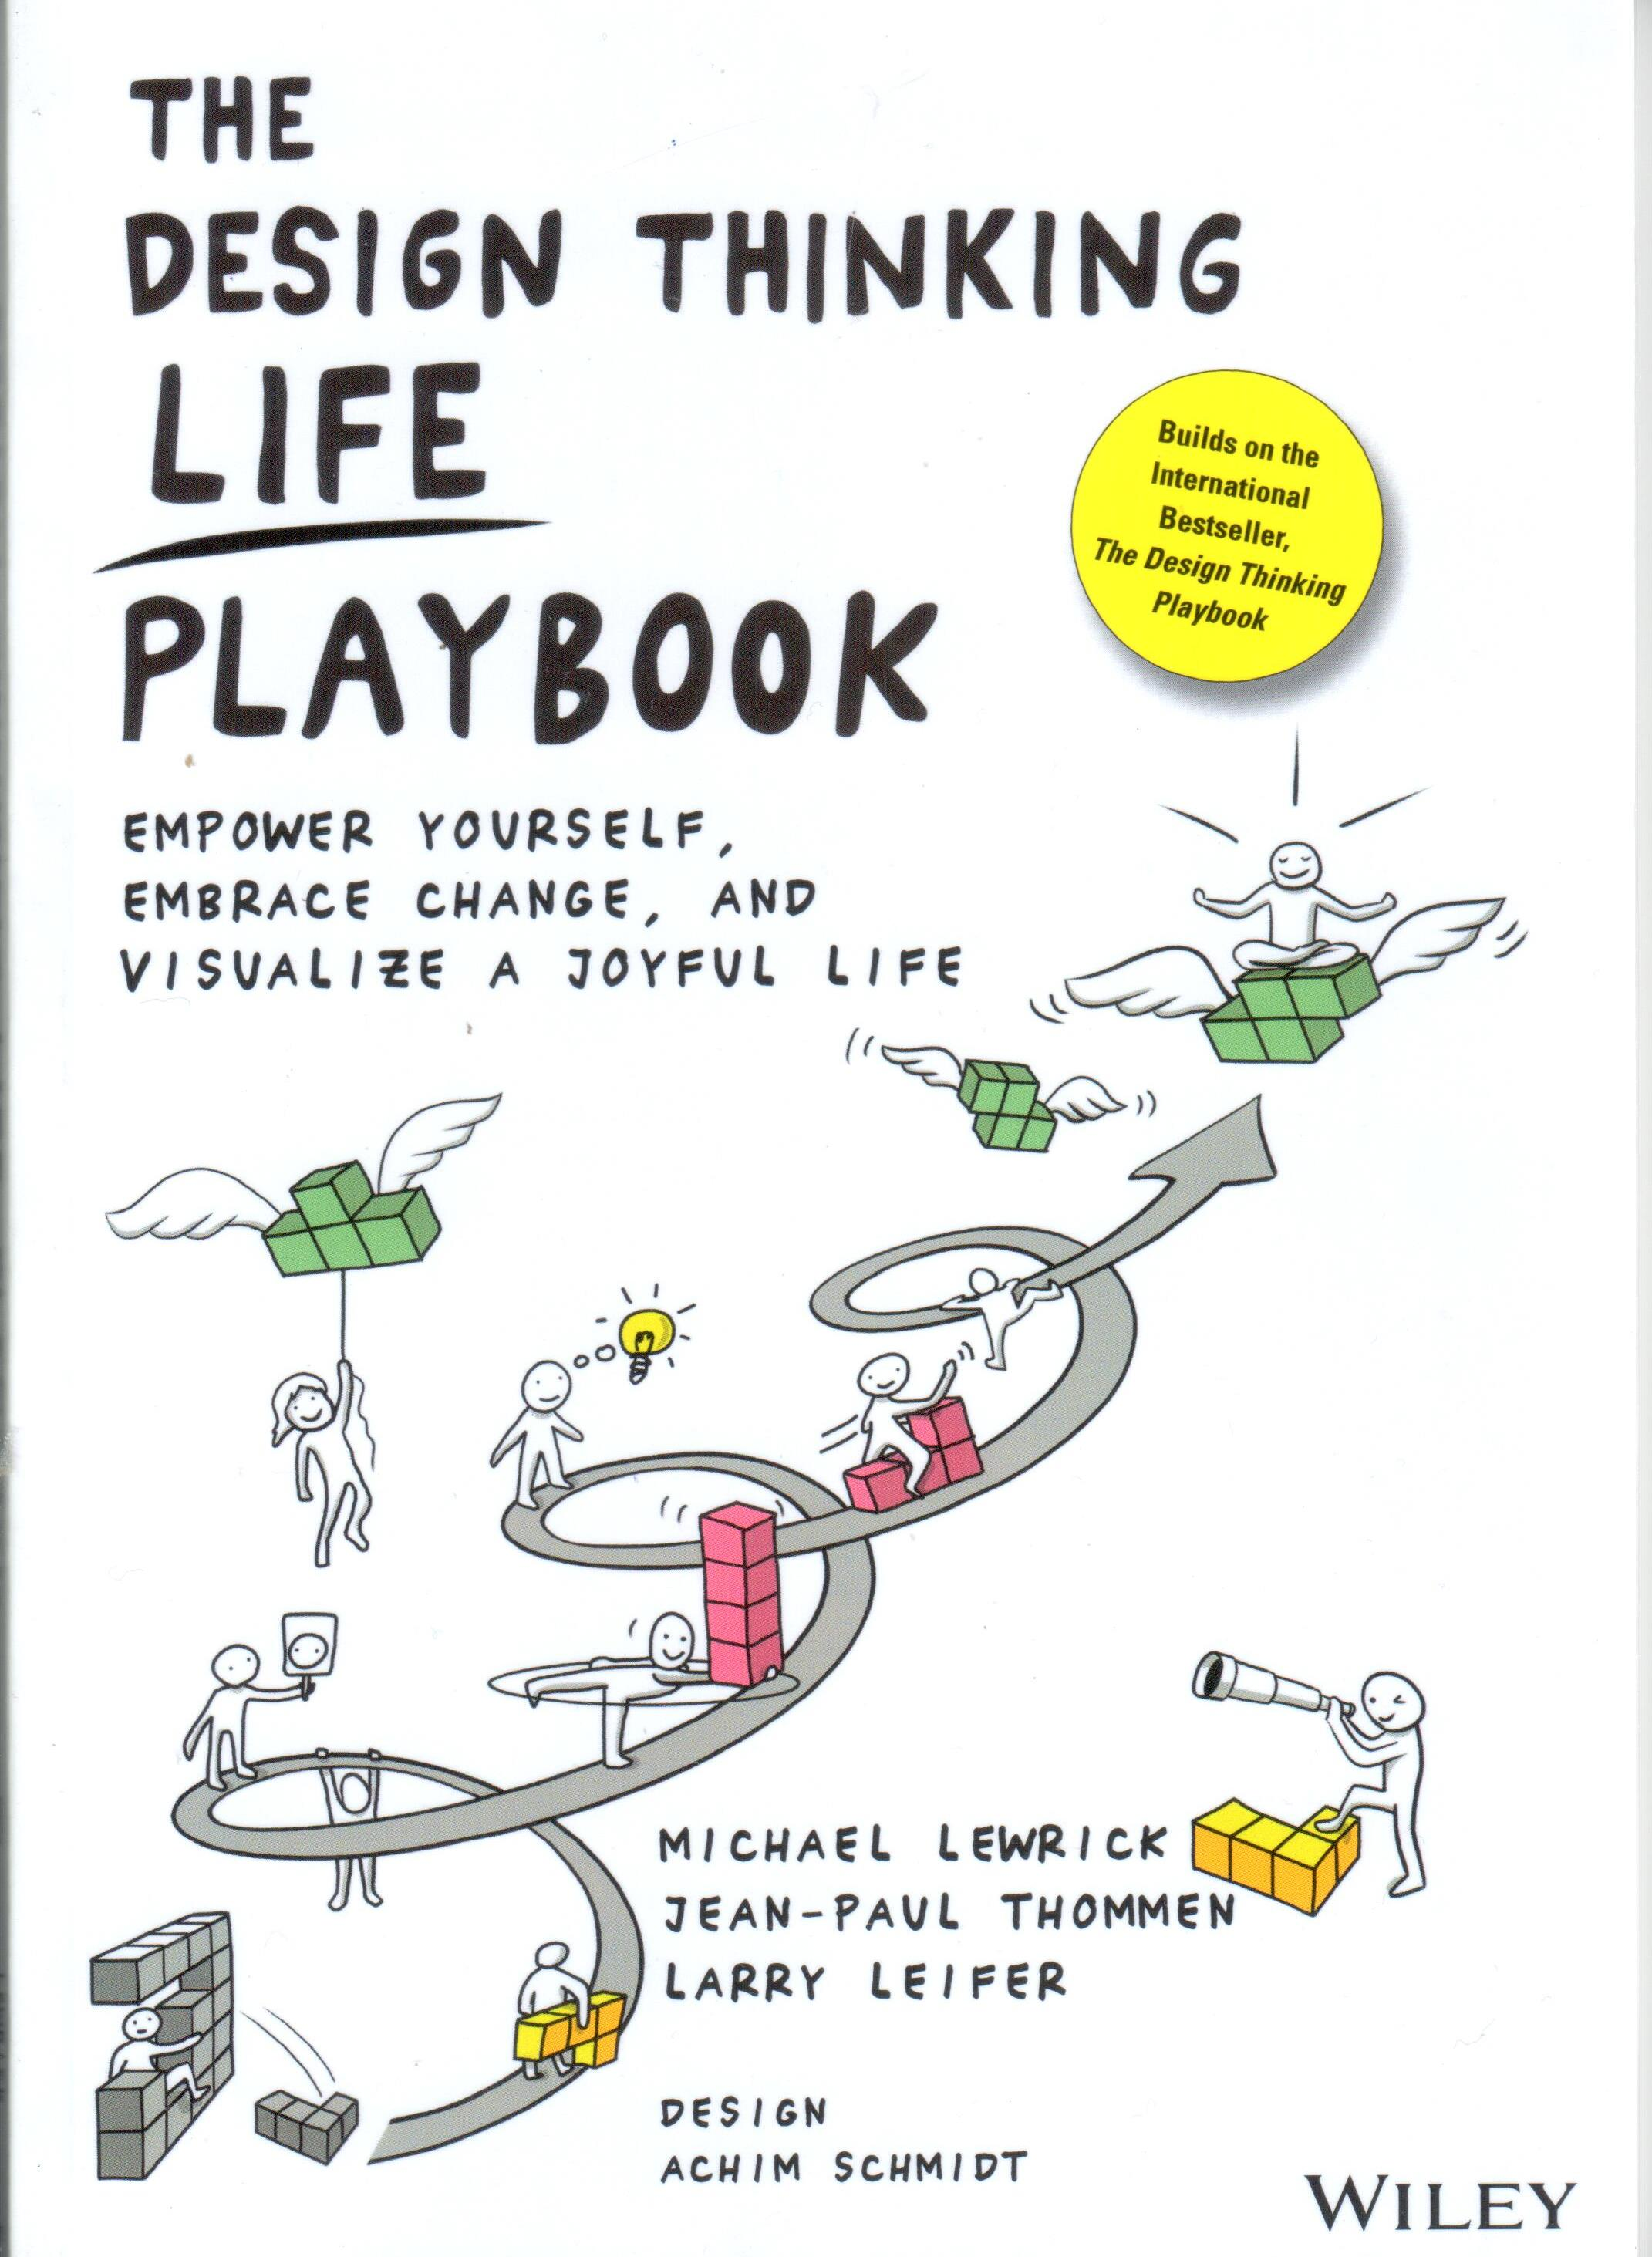 The Desing Thinking Life Playbook